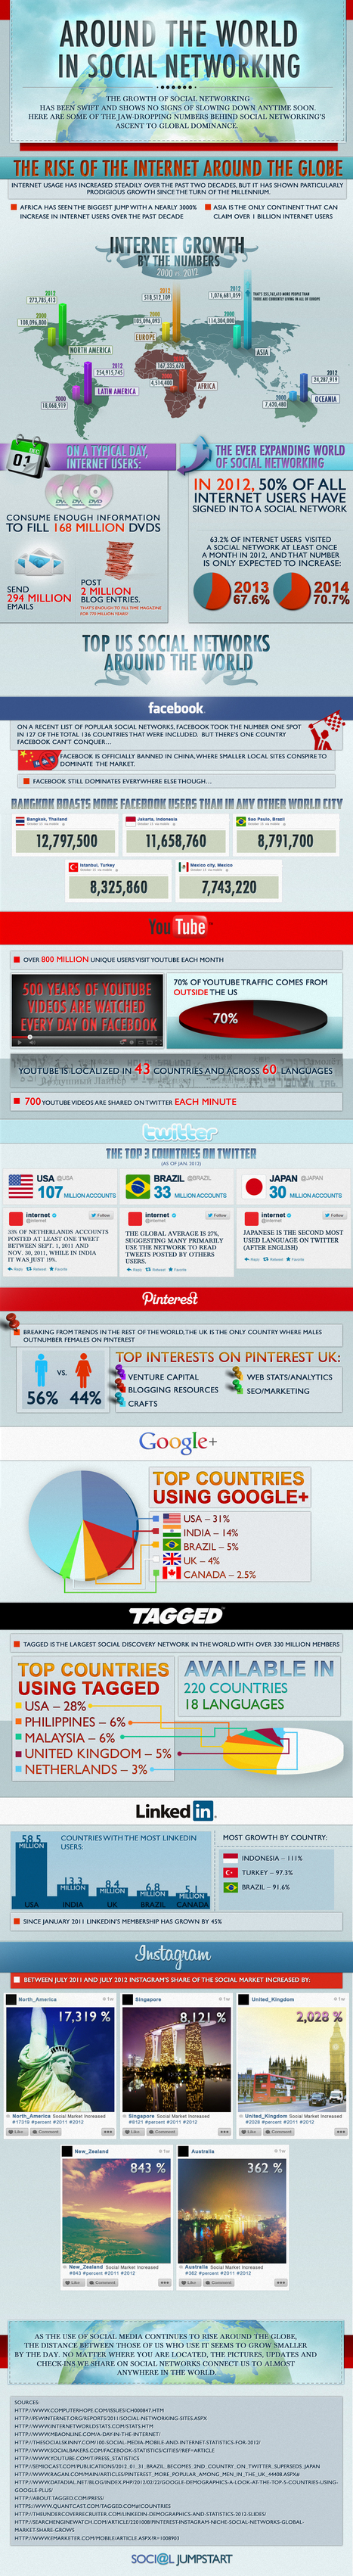 Facebook, Twitter, Pinterest, Instagram – How Big Is Social Media Around The World? | Visibility | Scoop.it